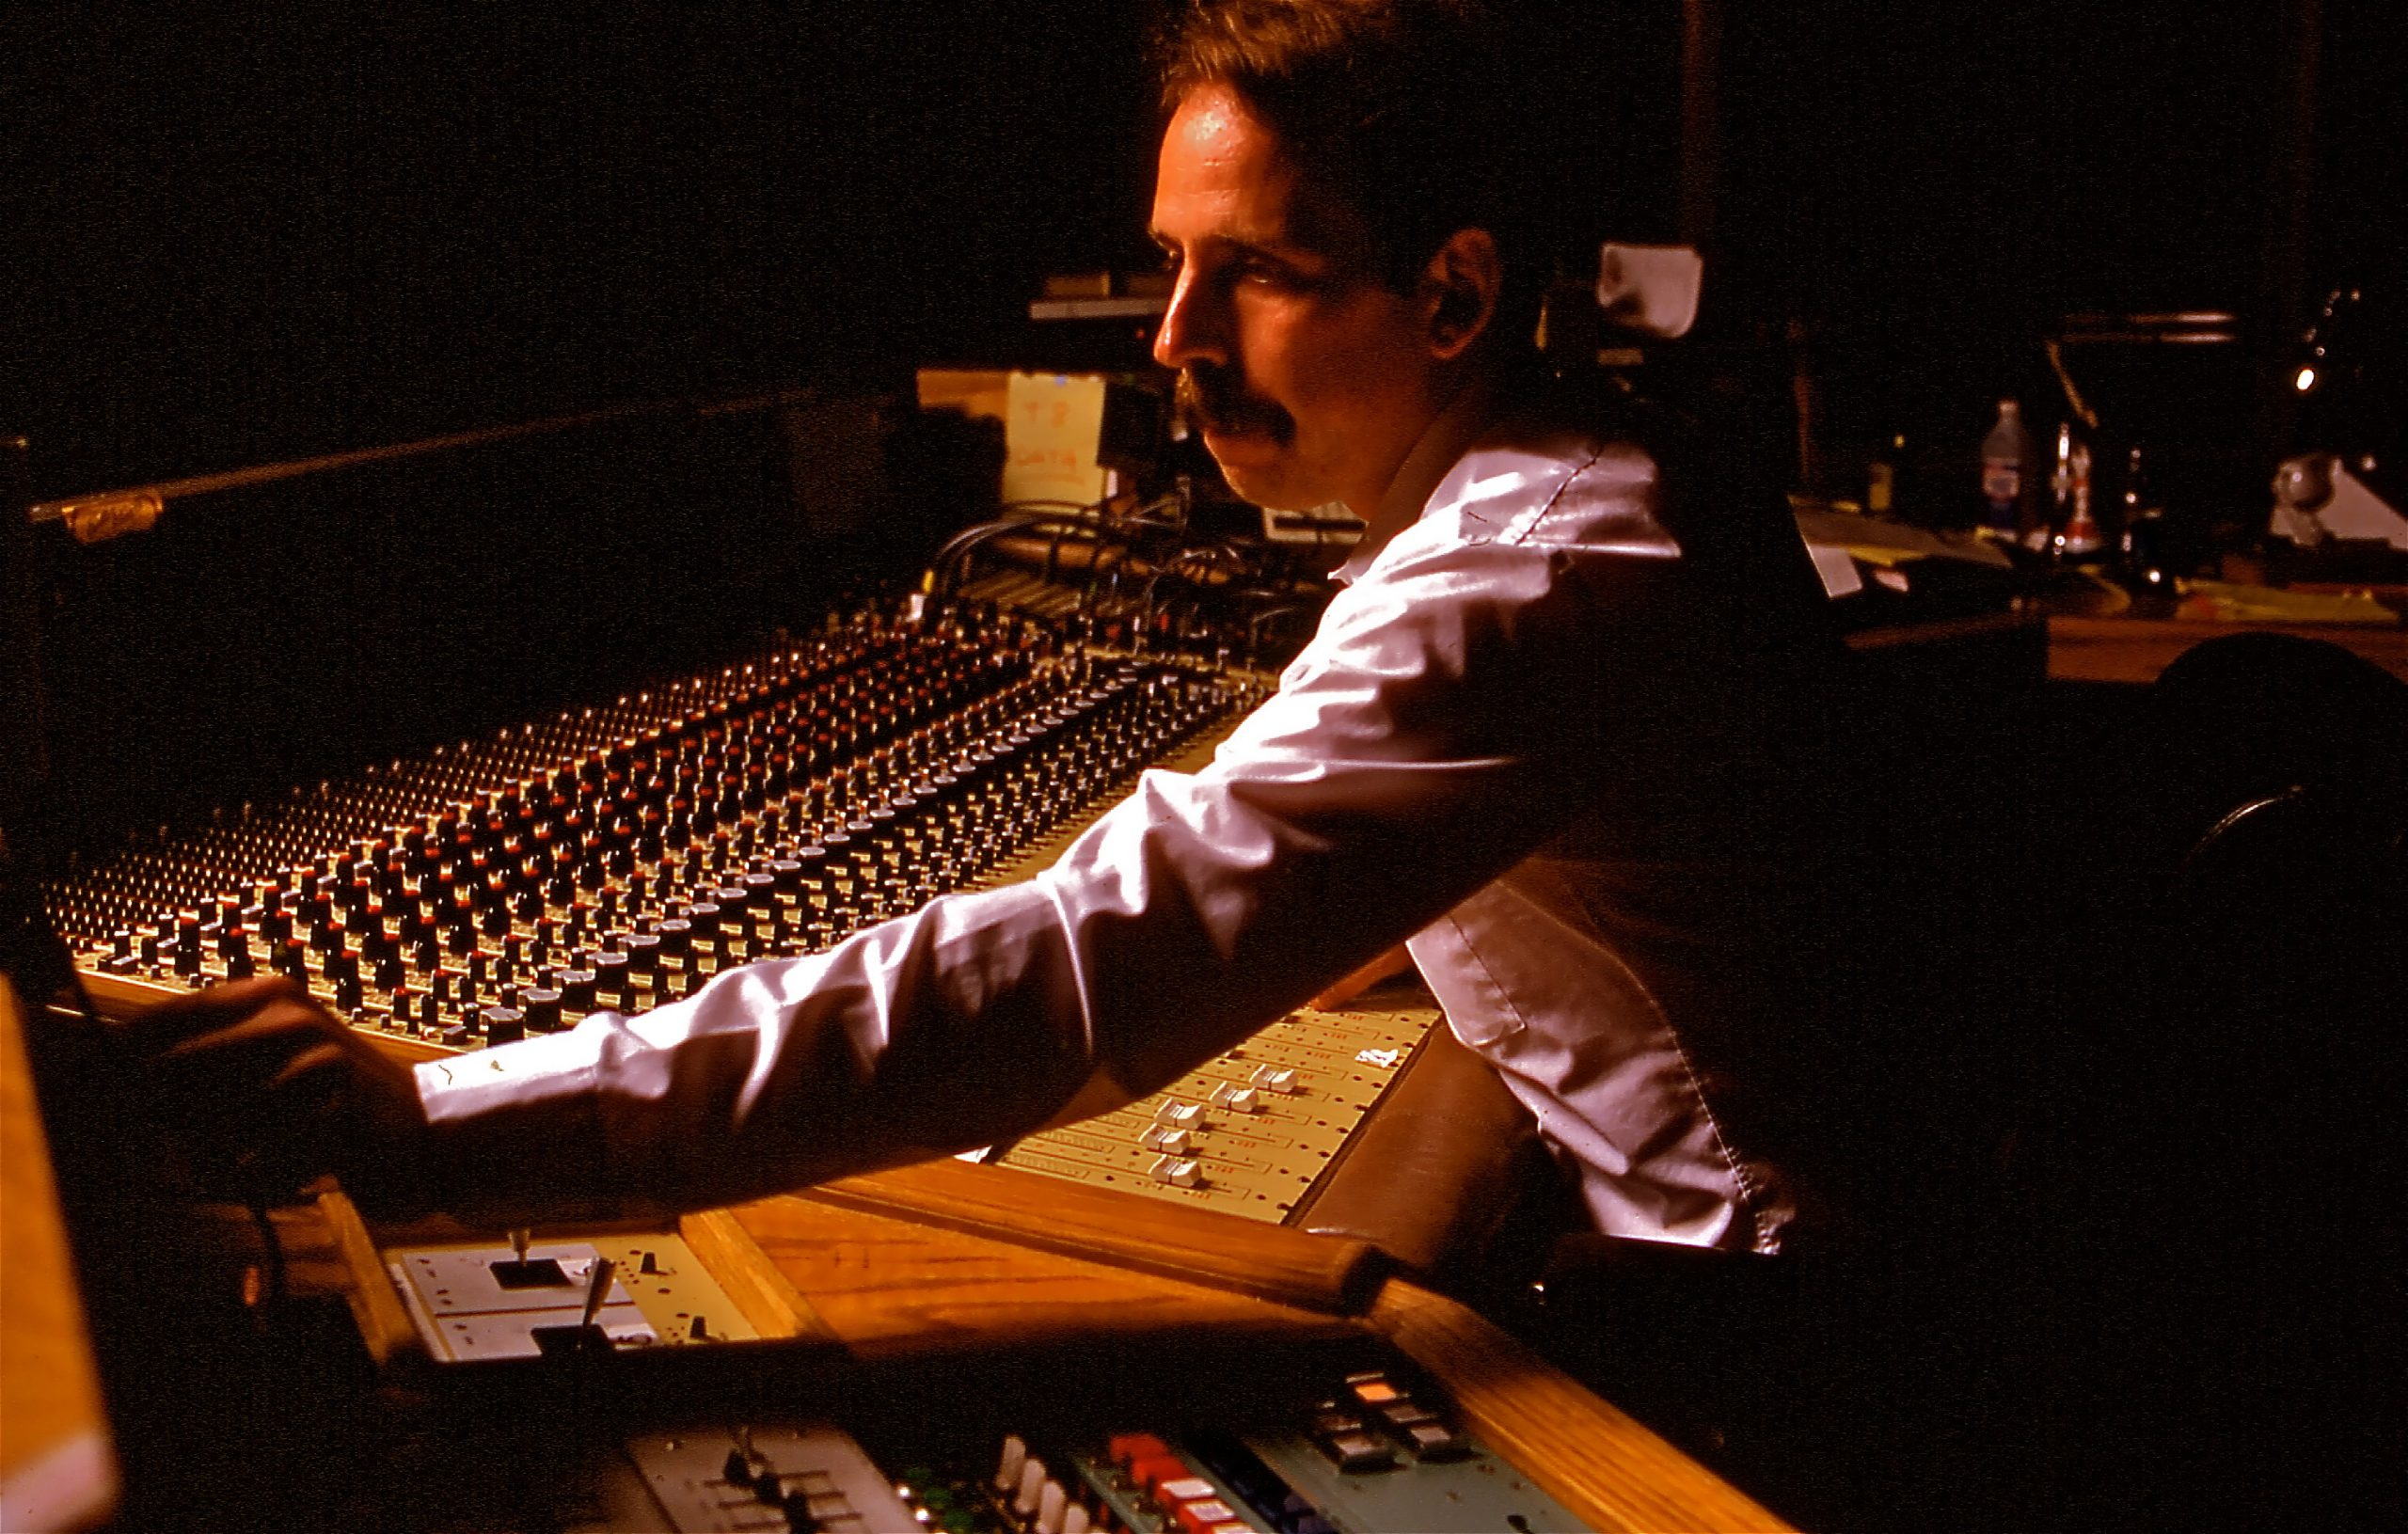 Walter Munch's sound mixing for Apocalypse Now one of the stories presented in Midge Costin's documentary Making Waves: The Art of Cinematic Sound